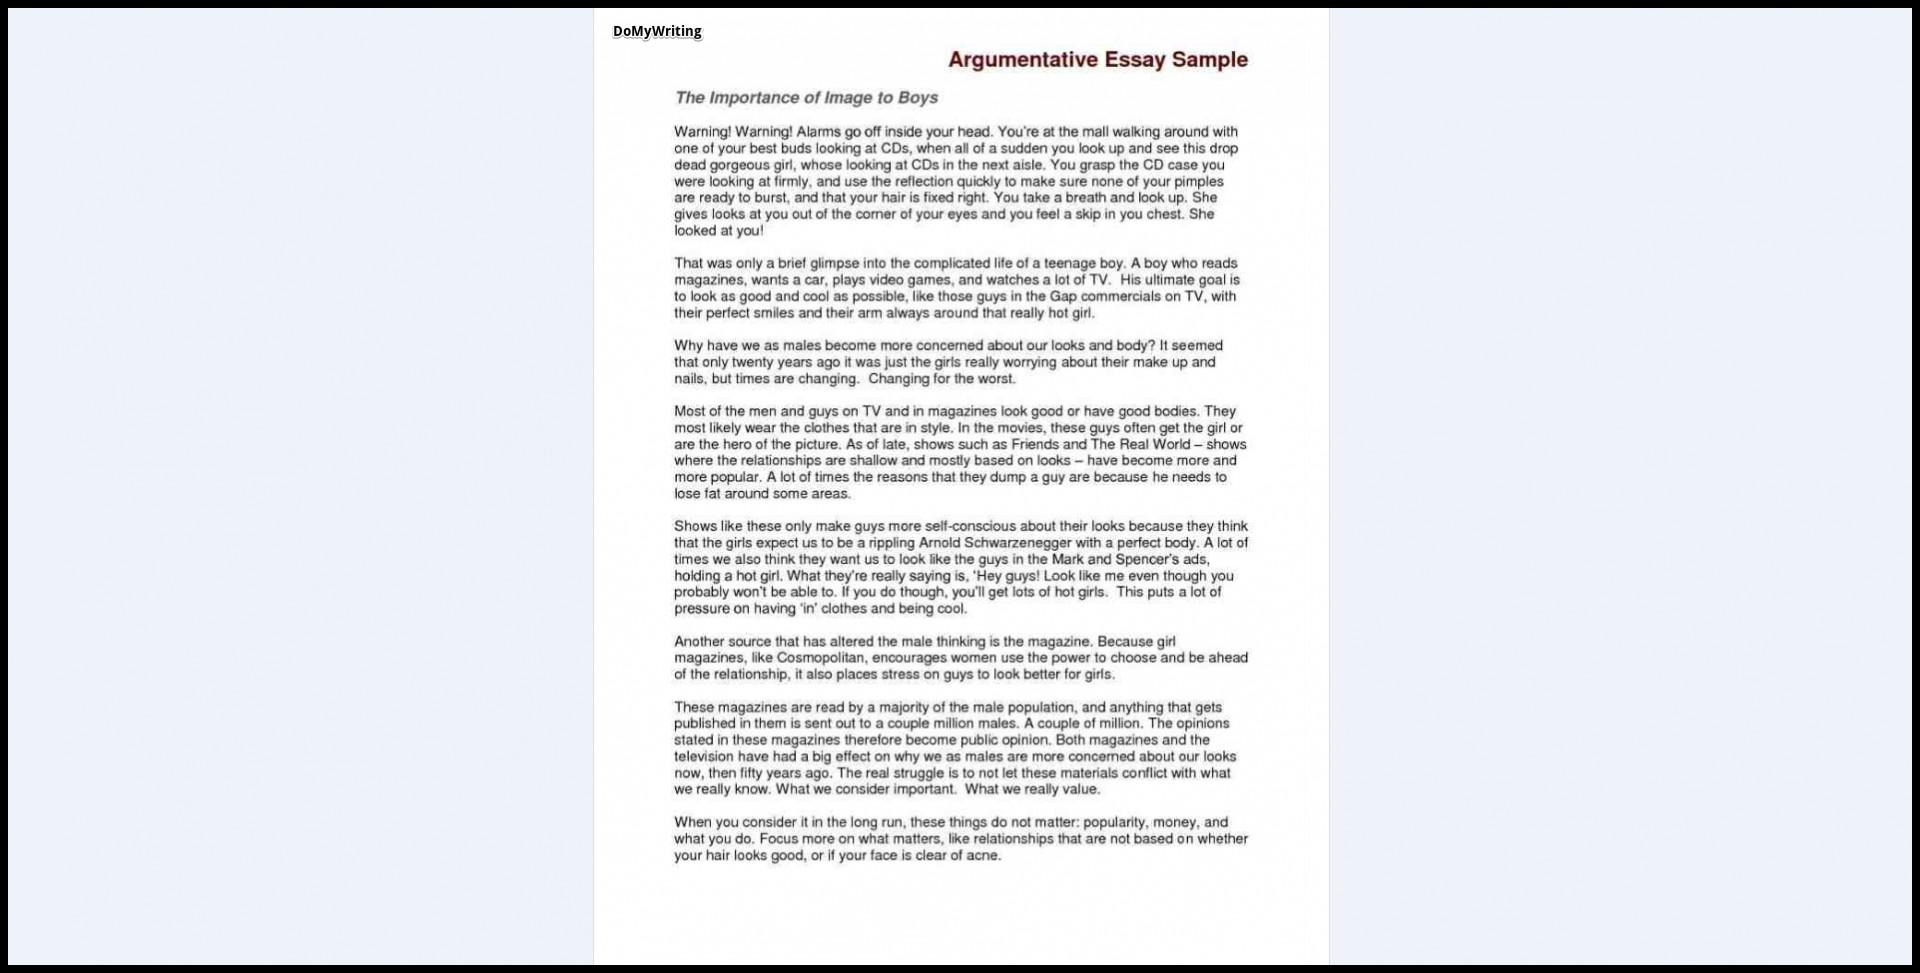 017 Argumentative Essay Sample Samples Excellent Good For Toefl Ielts Pdf 1920